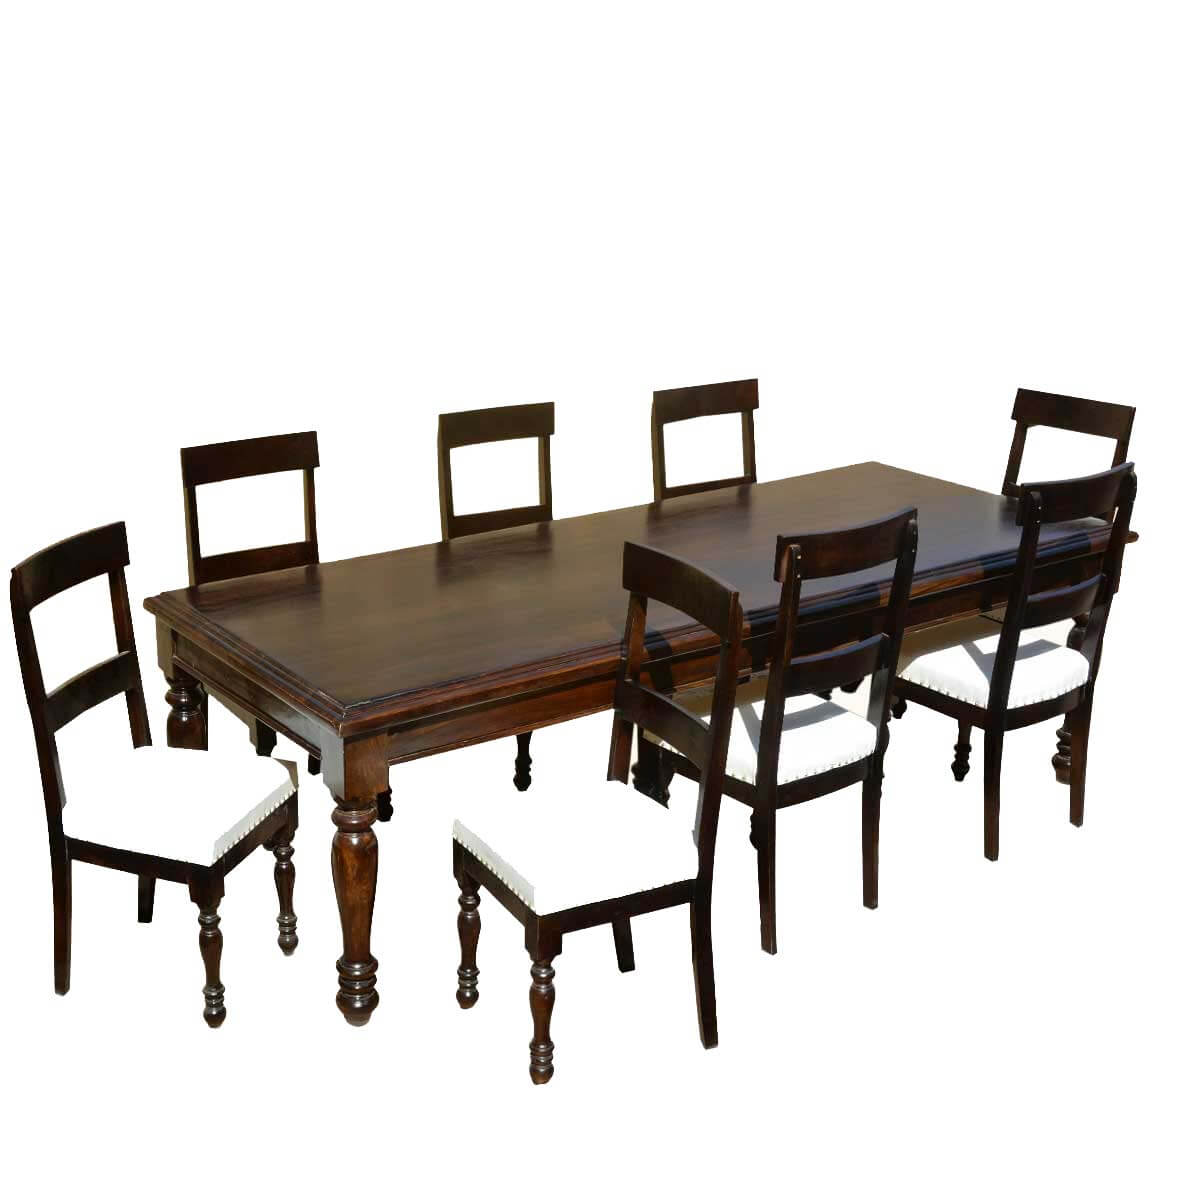 Wonderful image of American Acacia wood 108 Dining Table & 8 Leather Upholstered Chairs with #968035 color and 1200x1200 pixels